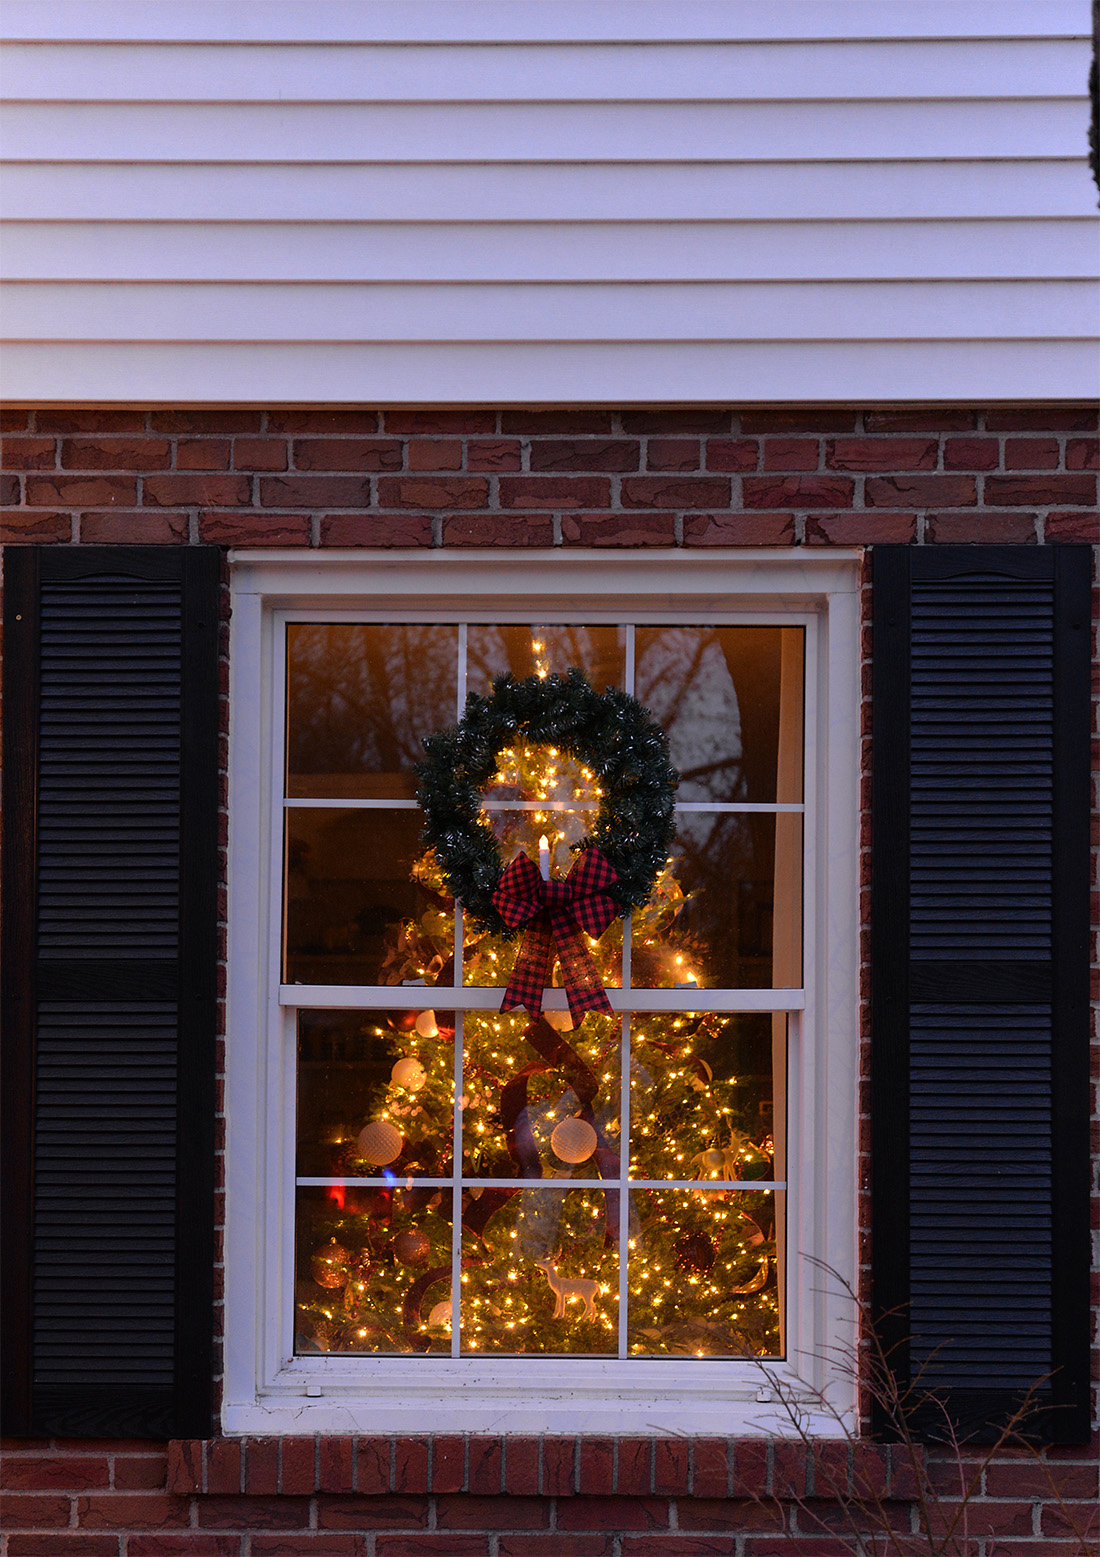 white house decorated with white christmas lights, wreaths on every window, Christmas tree through window